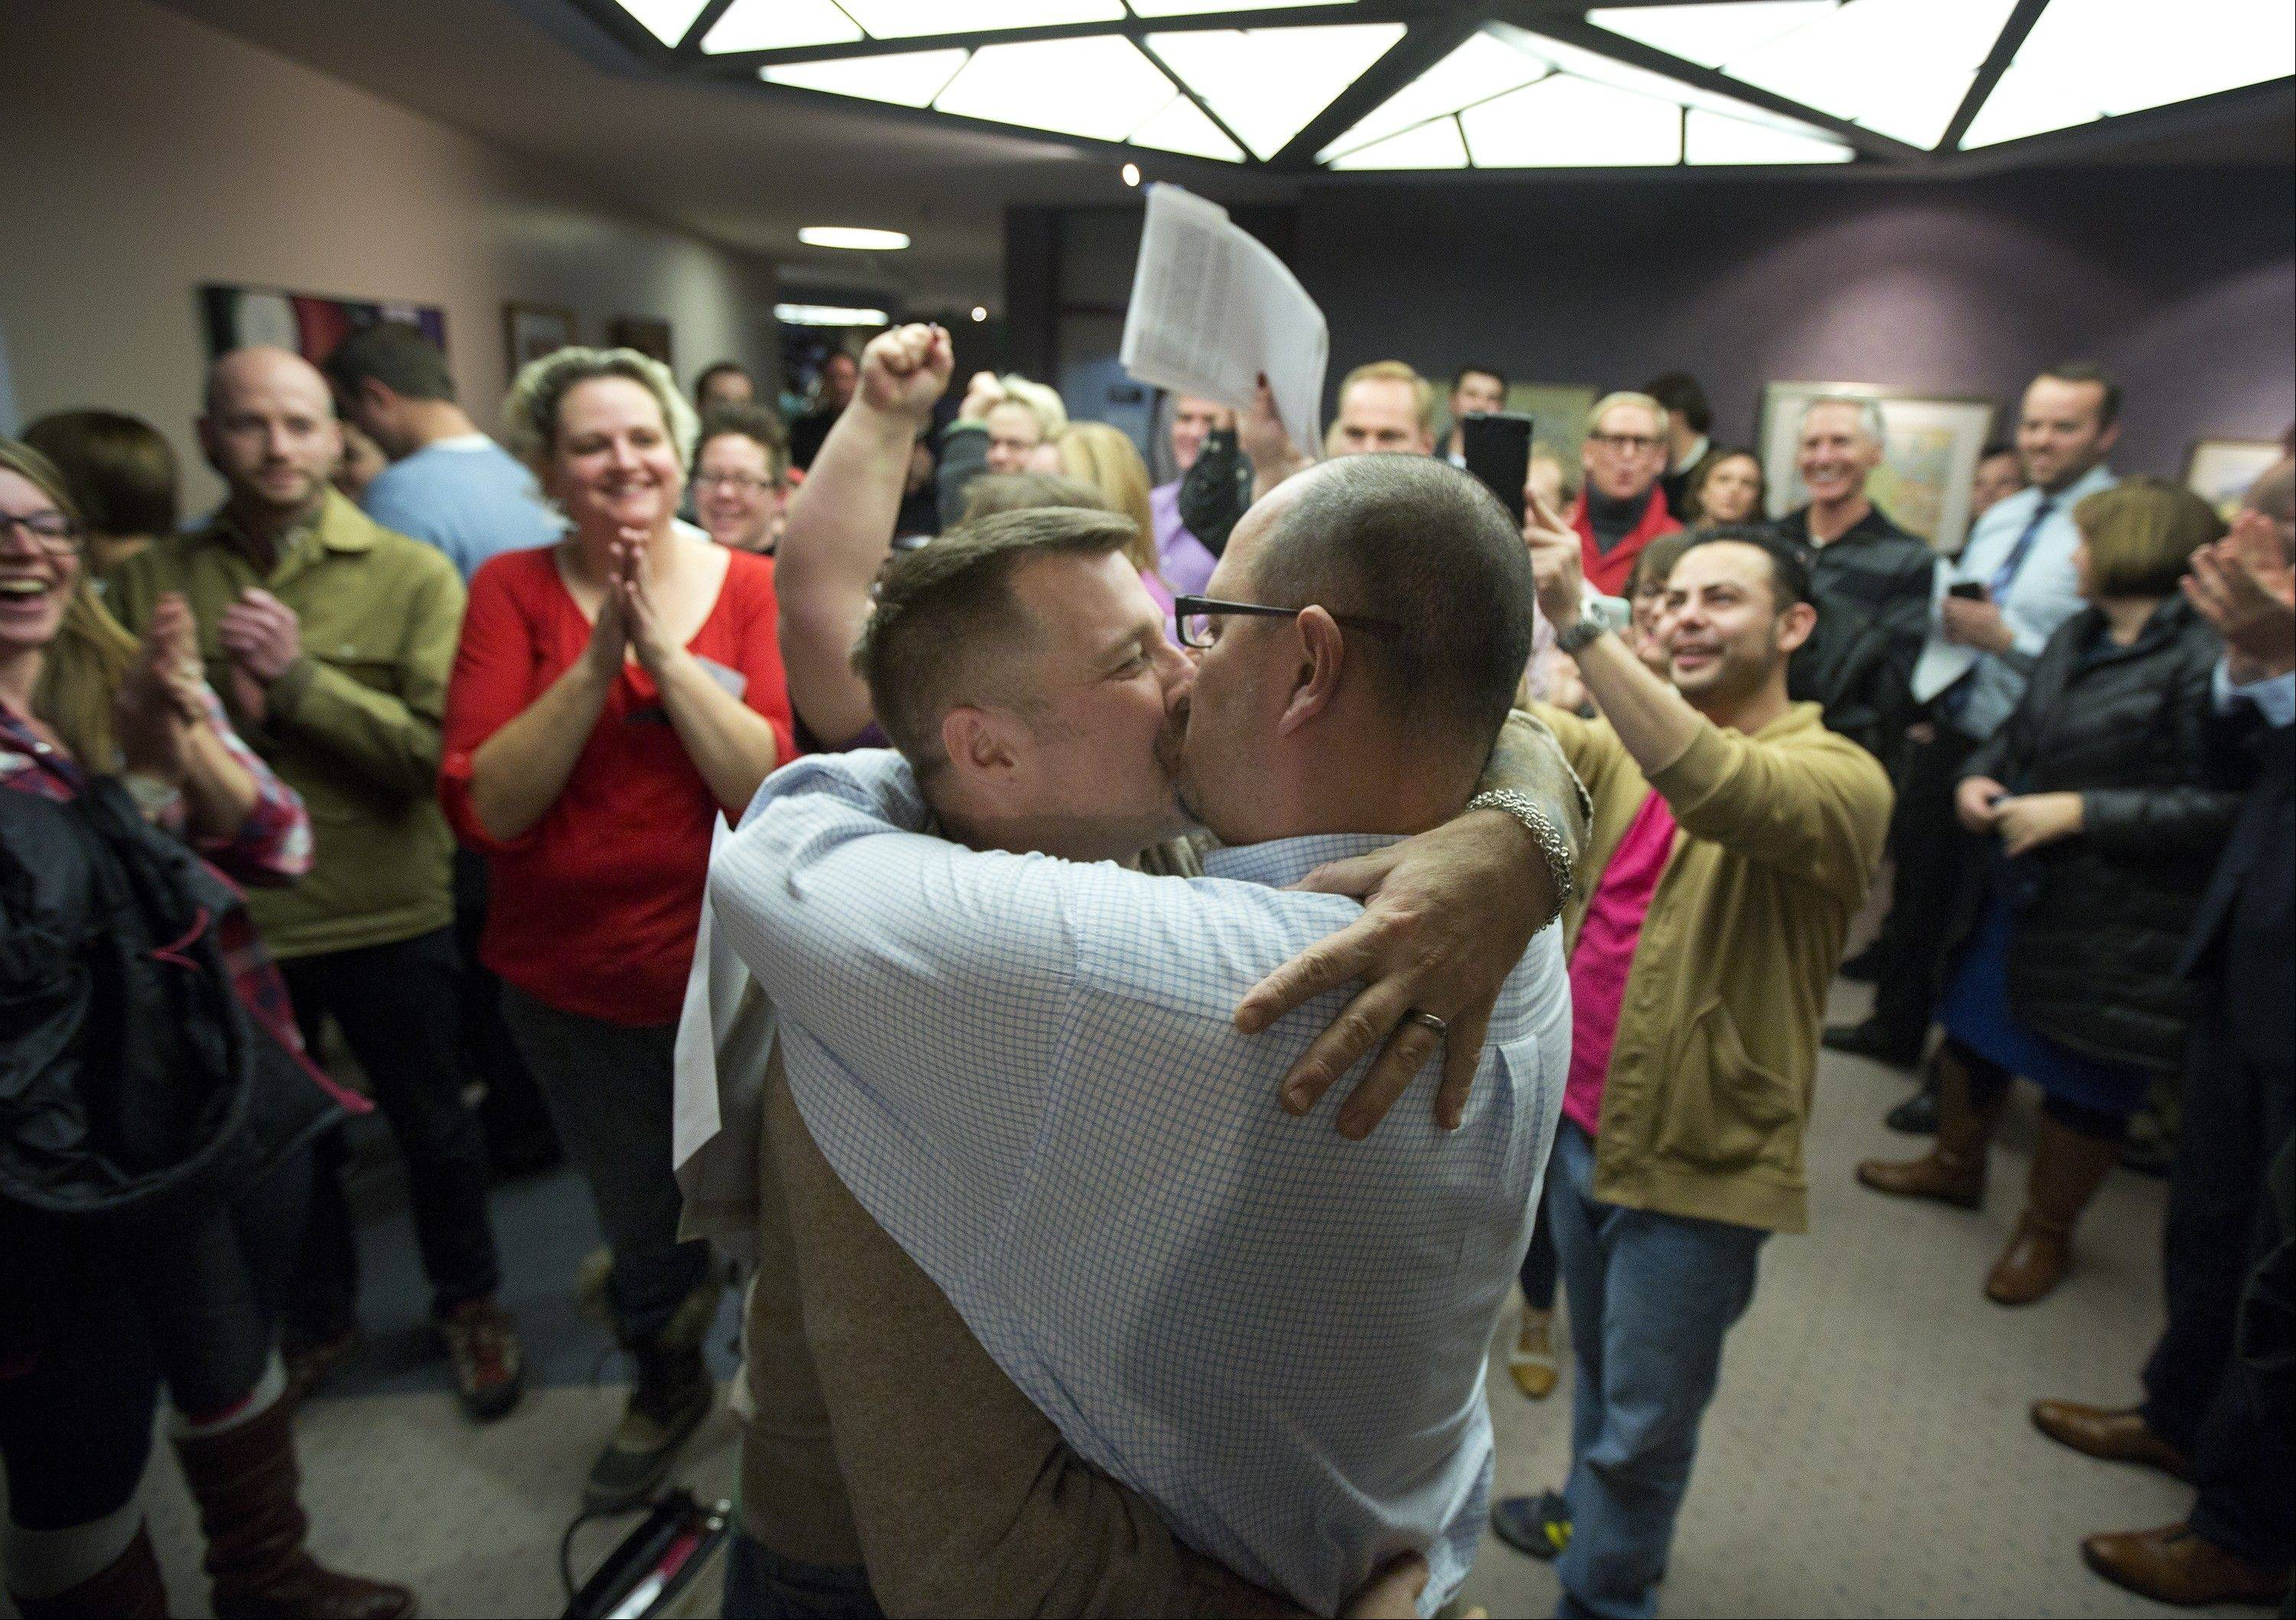 Chris Serrano, left, and Clifton Webb kiss after being married, as people wait in line to get licenses outside of the marriage division of the Salt Lake County Clerk's Office in Salt Lake City, last Friday.